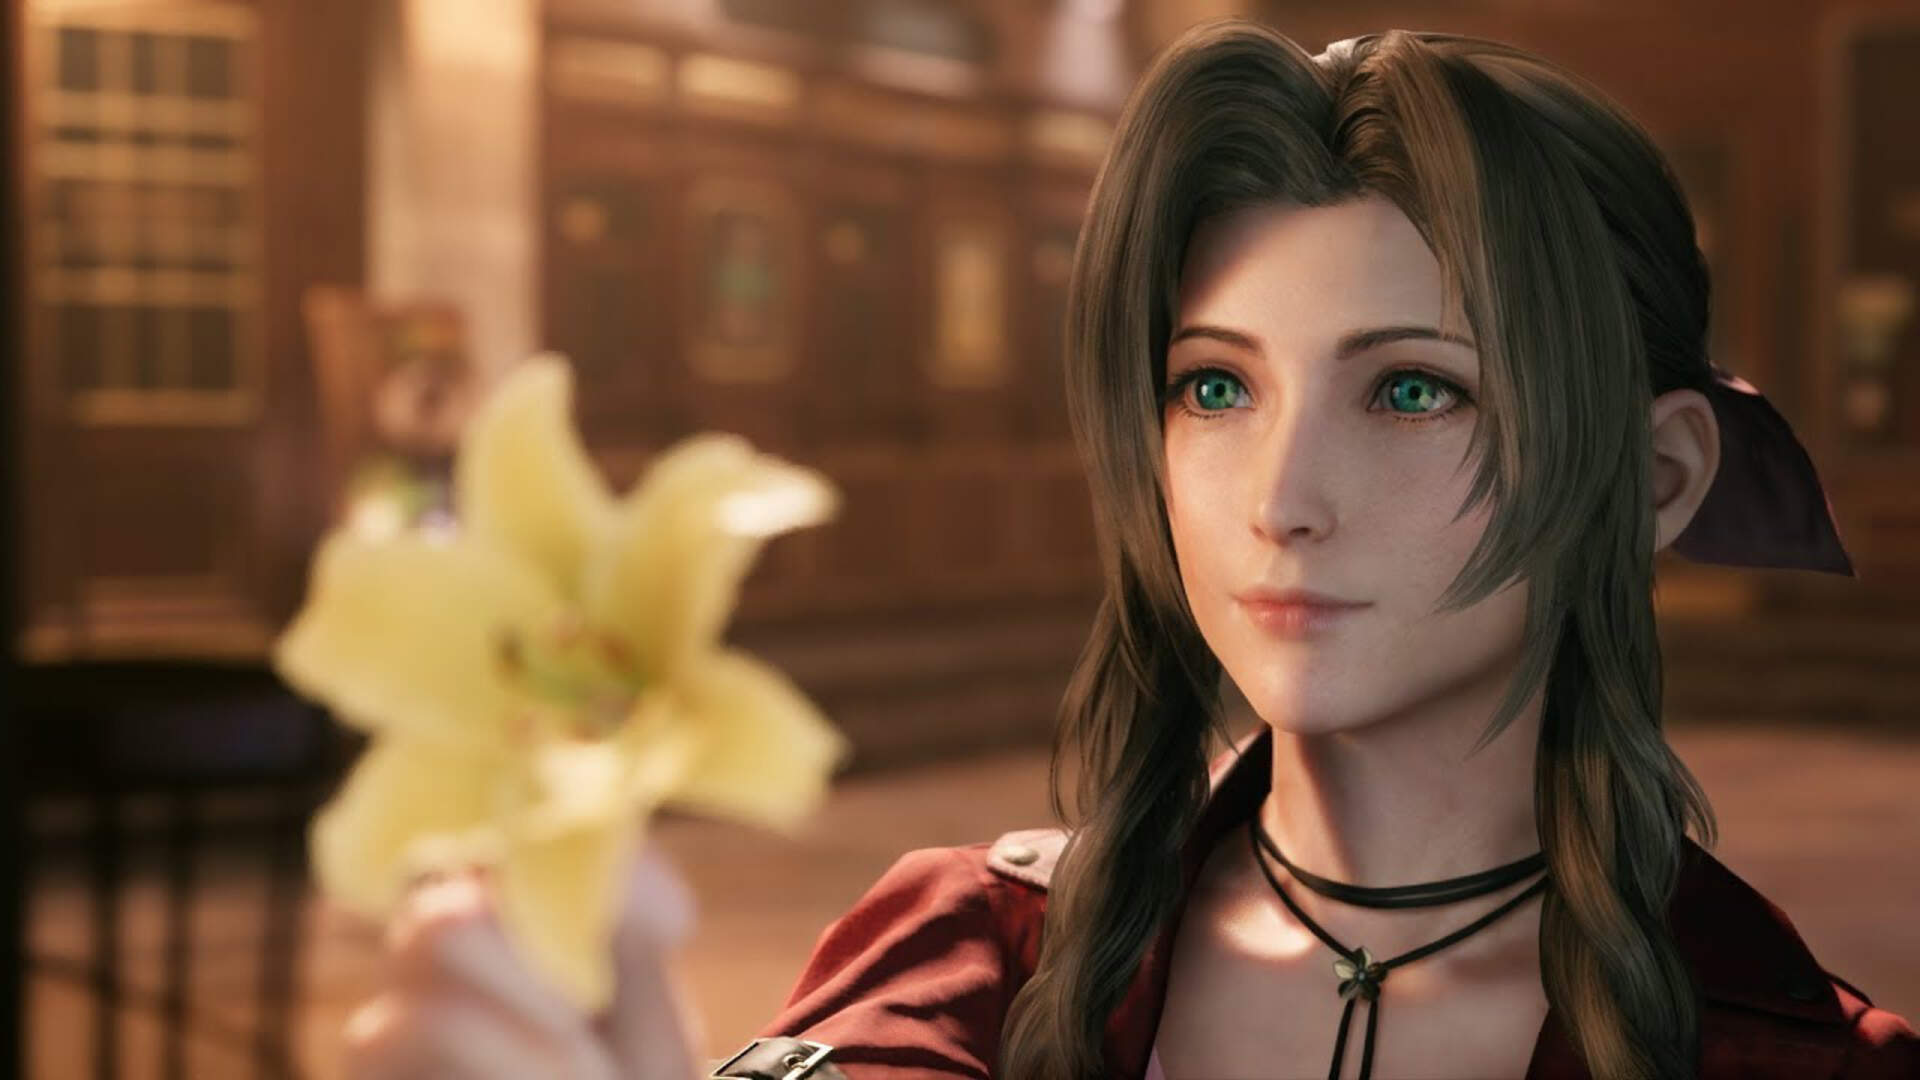 Final Fantasy 7 Remake Is Already Out in Australia